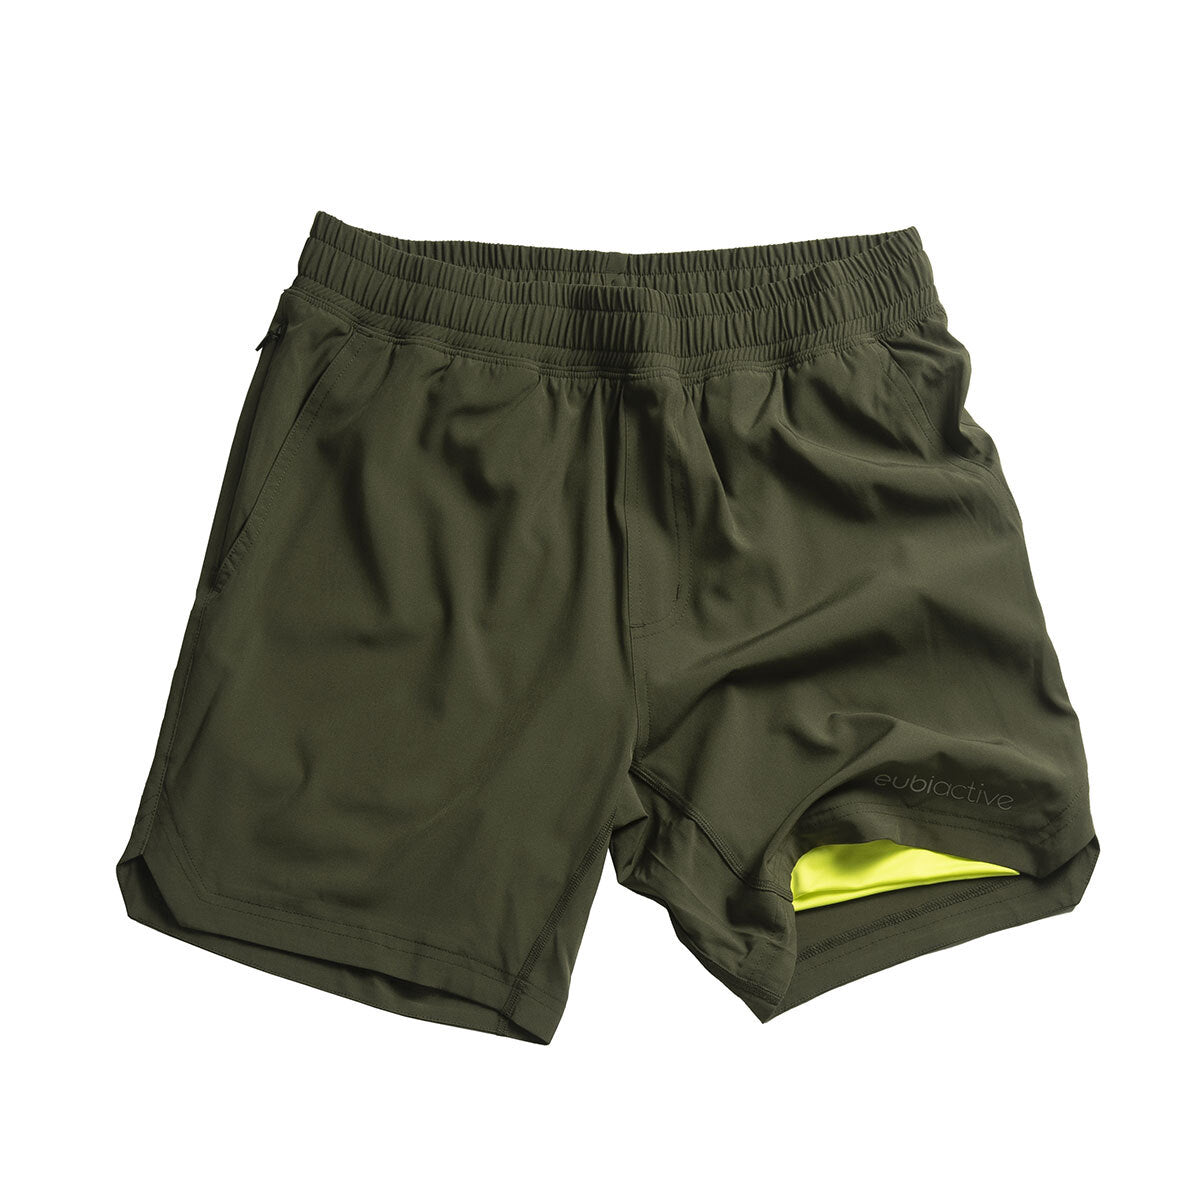 EUBI Active Ultima Shorts - Army Green